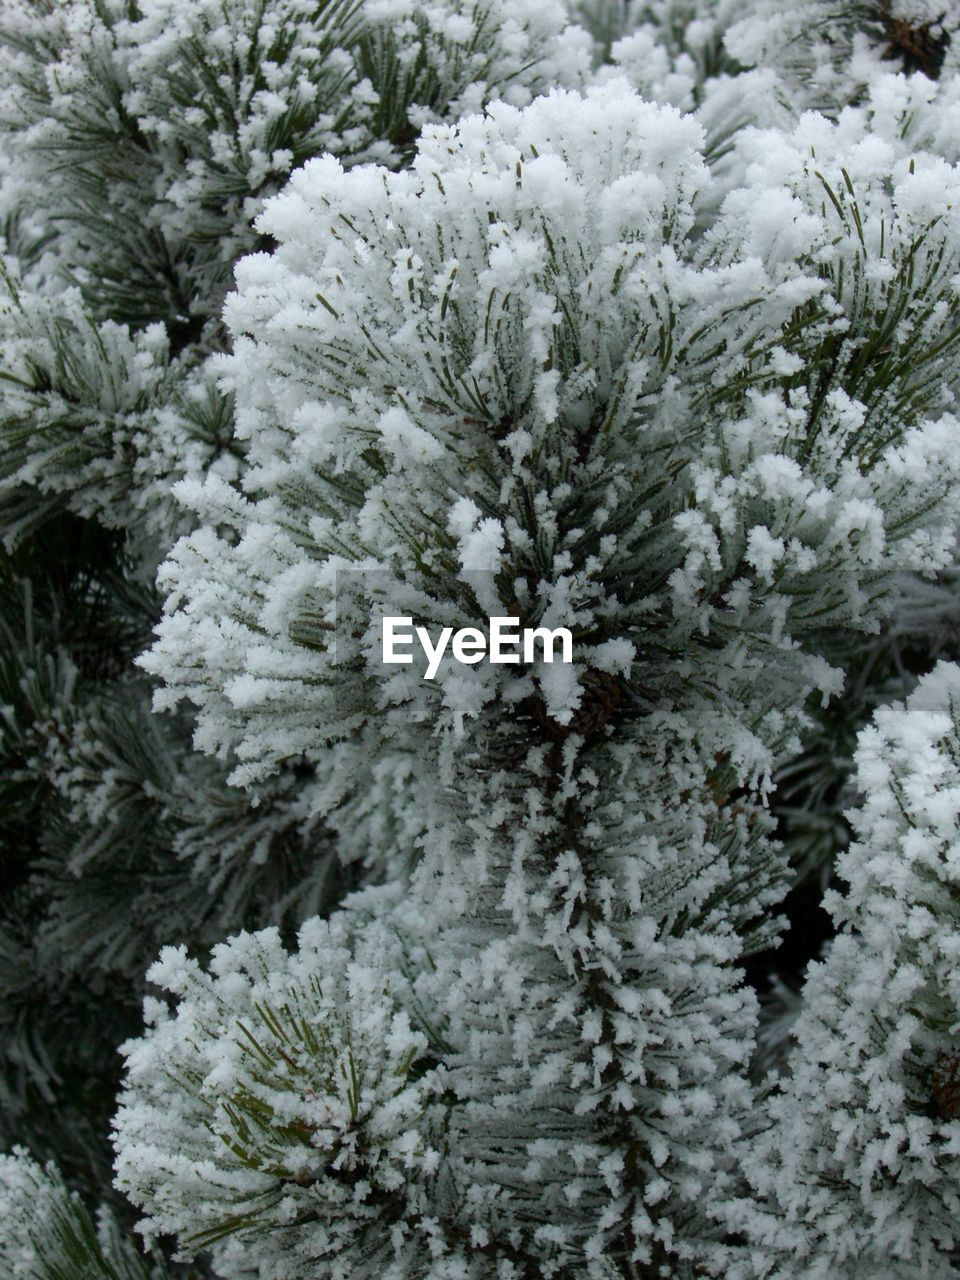 winter, snow, cold temperature, nature, growth, pine tree, no people, fir tree, christmas tree, plant, close-up, spruce tree, christmas, outdoors, day, beauty in nature, snowflake, tree